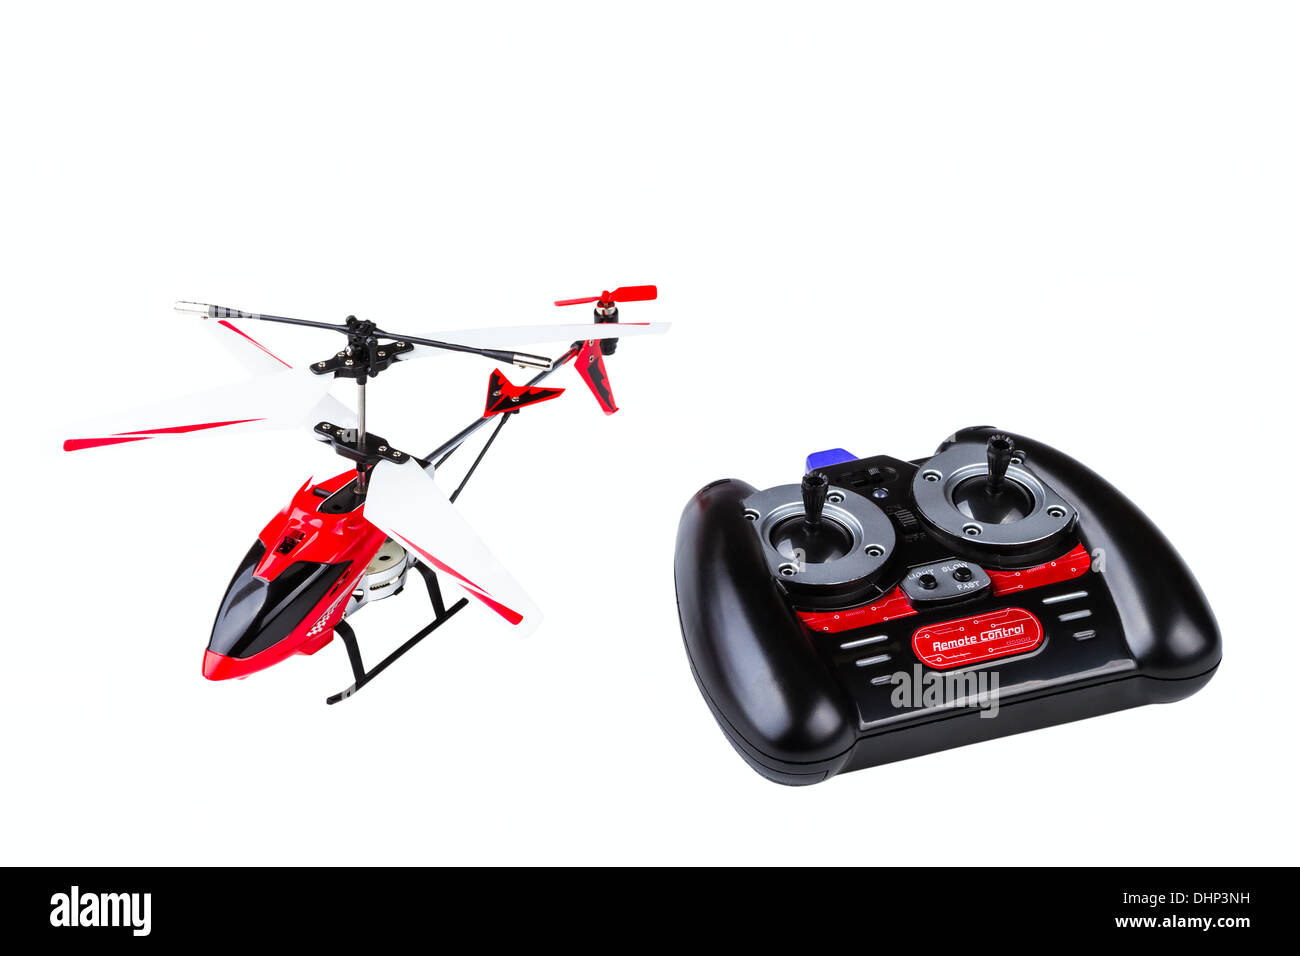 radio-controlled model of the helicopter with the control panel isolated on white background - Stock Image